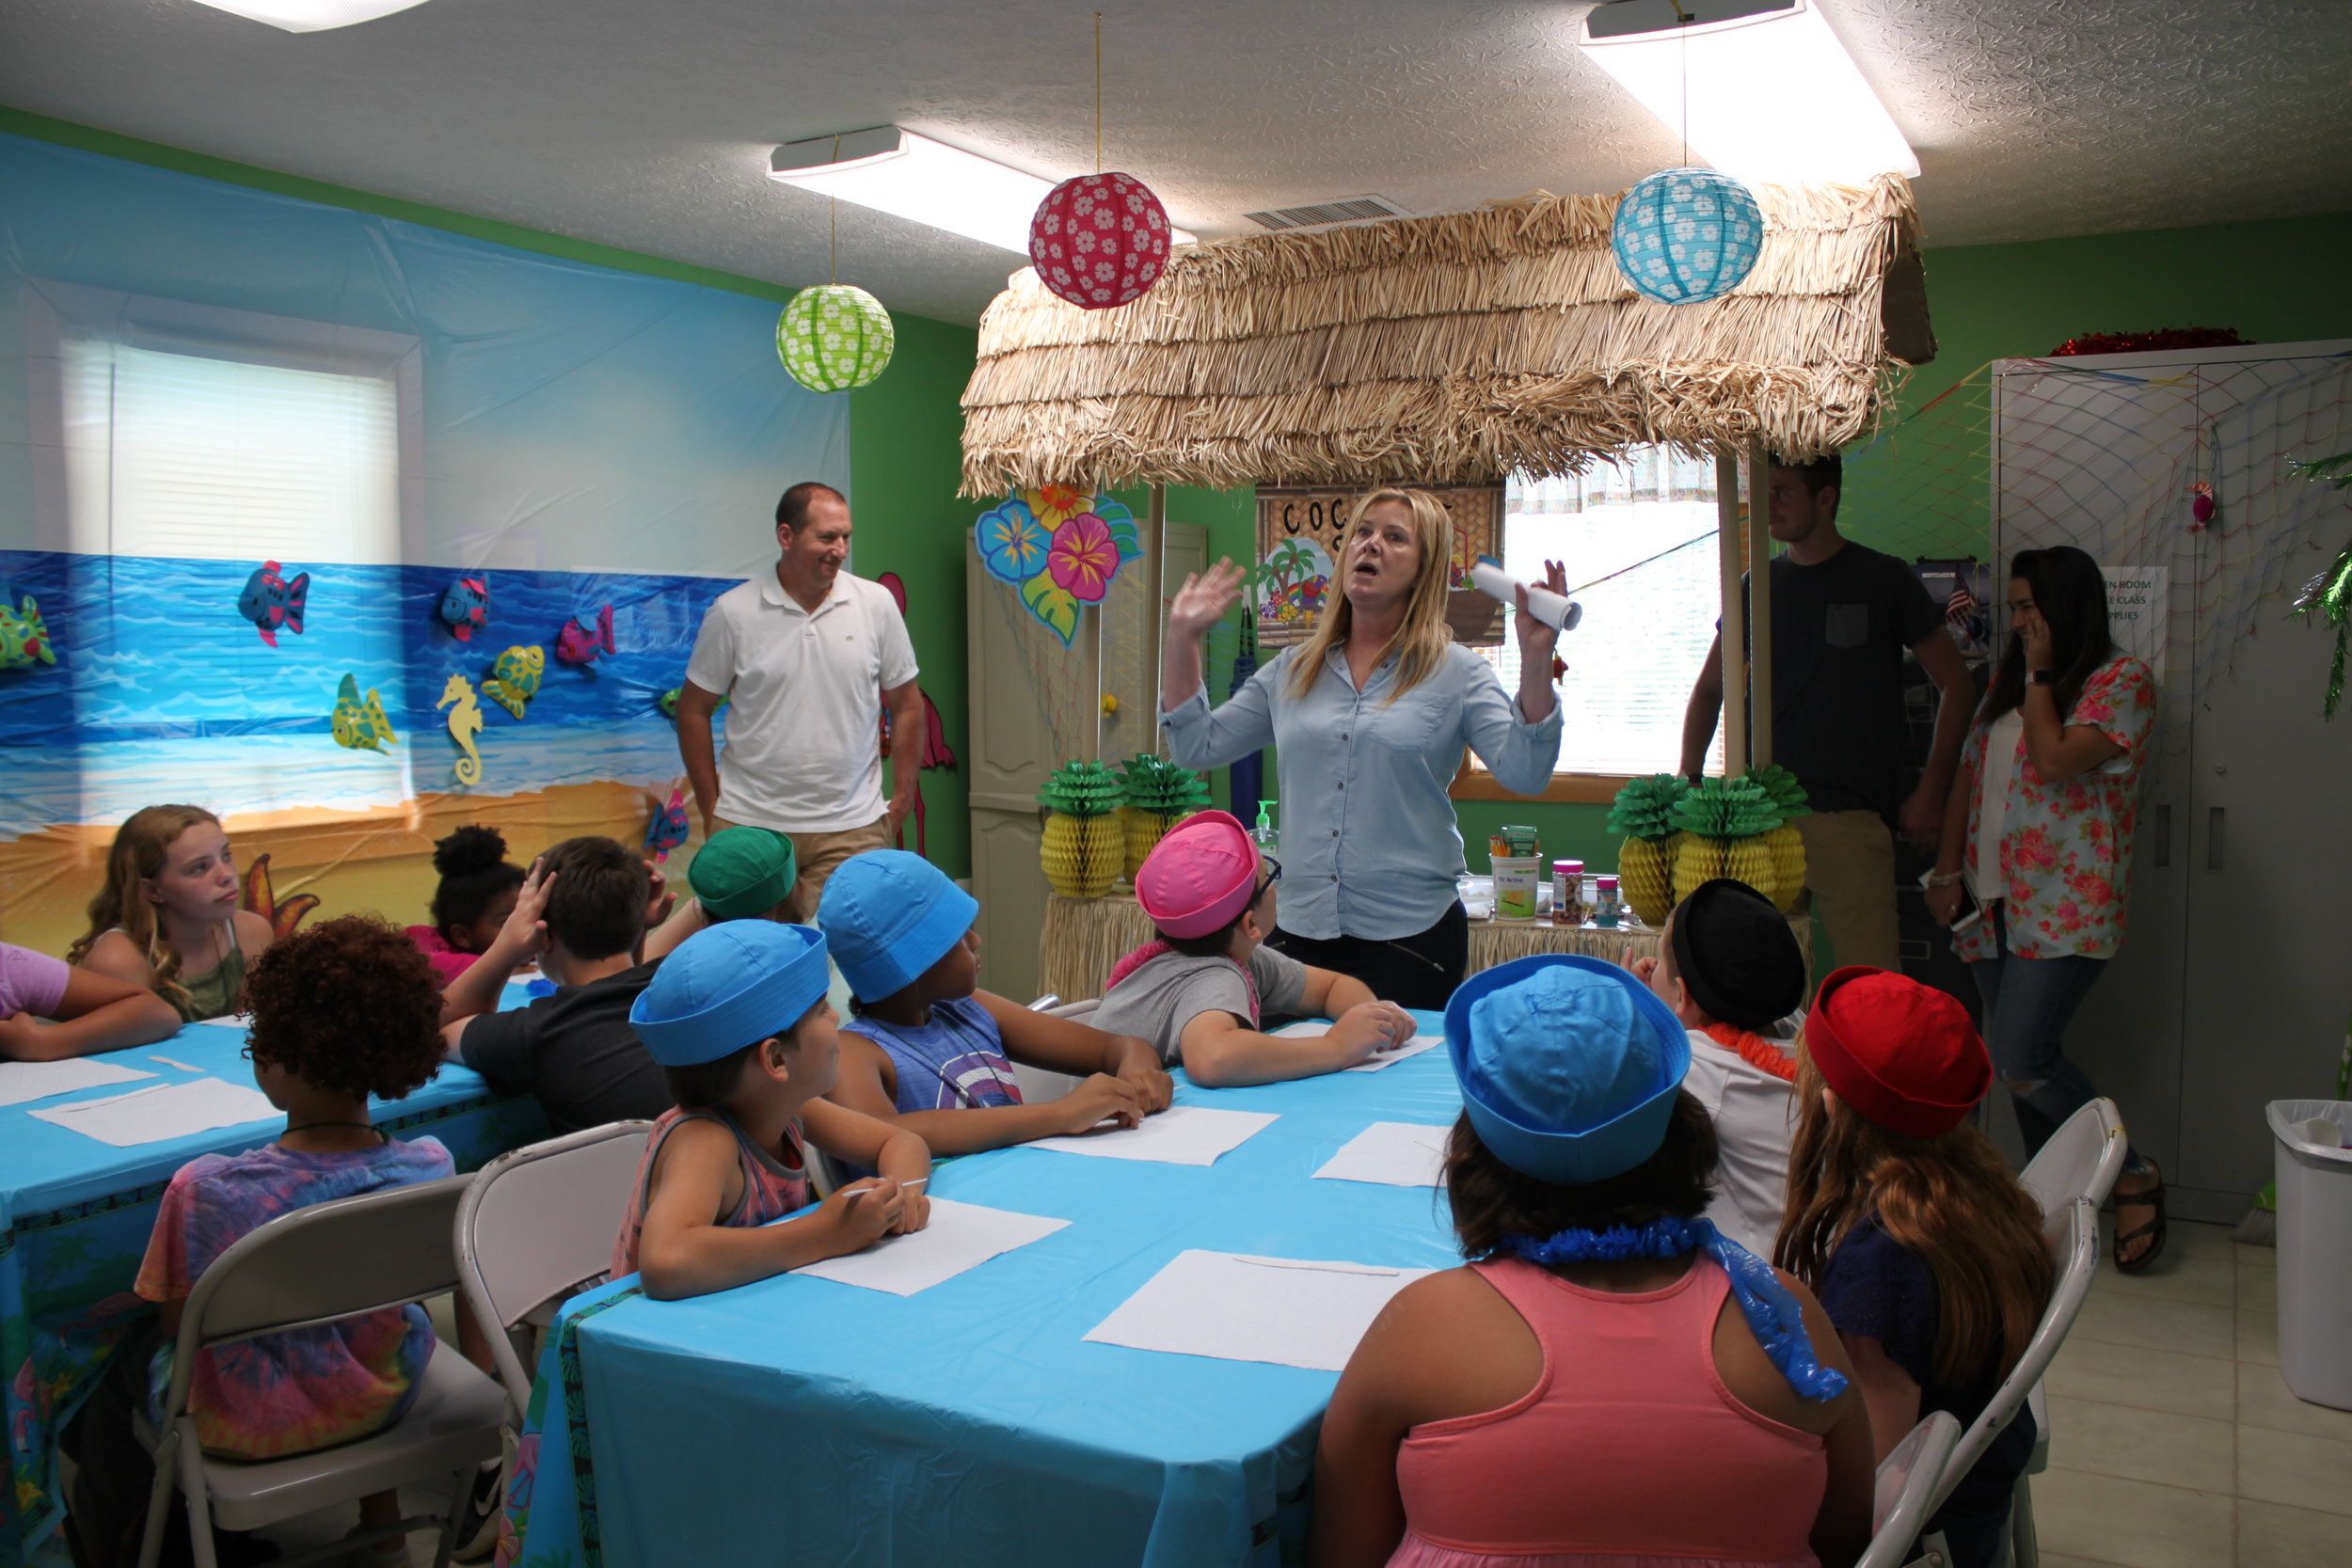 Linda Veltri (member) teaching a class in the 2019 VBS Super Saturday with the assistance of John Vetri, Luke Veltri and Tori Garnes.